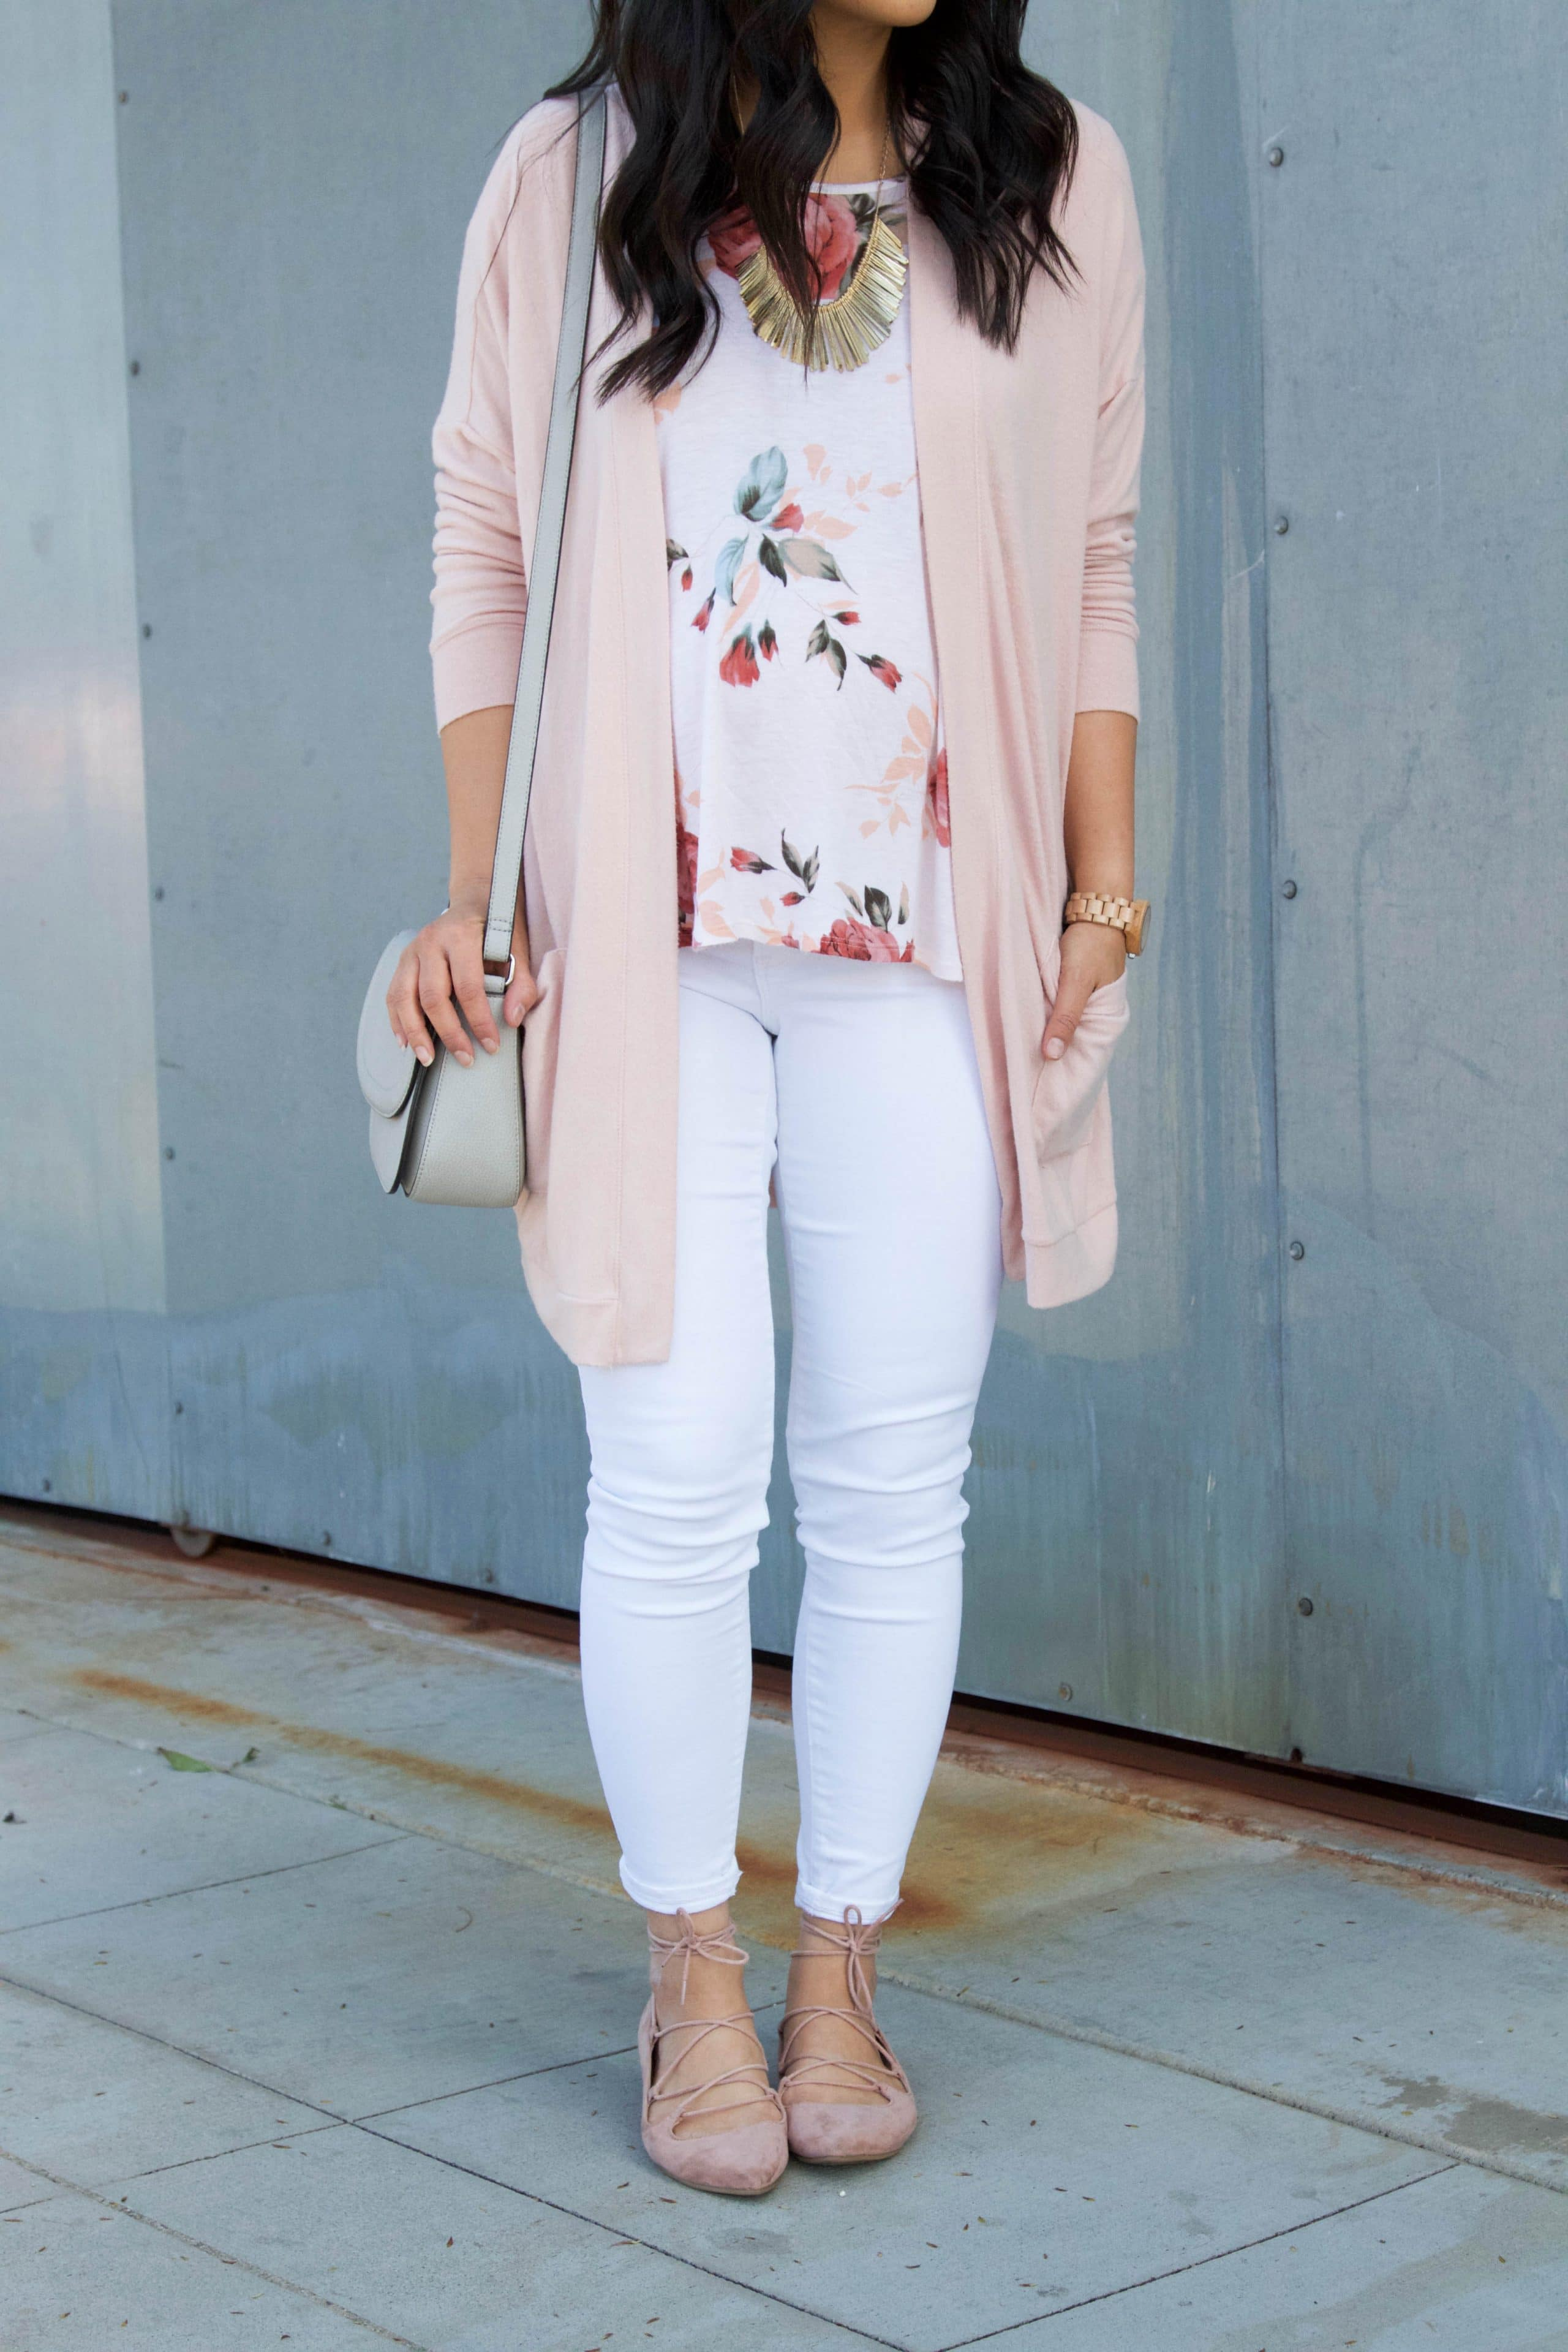 Blush Cardigan + Floral Top + White Jeans + Blush Flats + White Bag